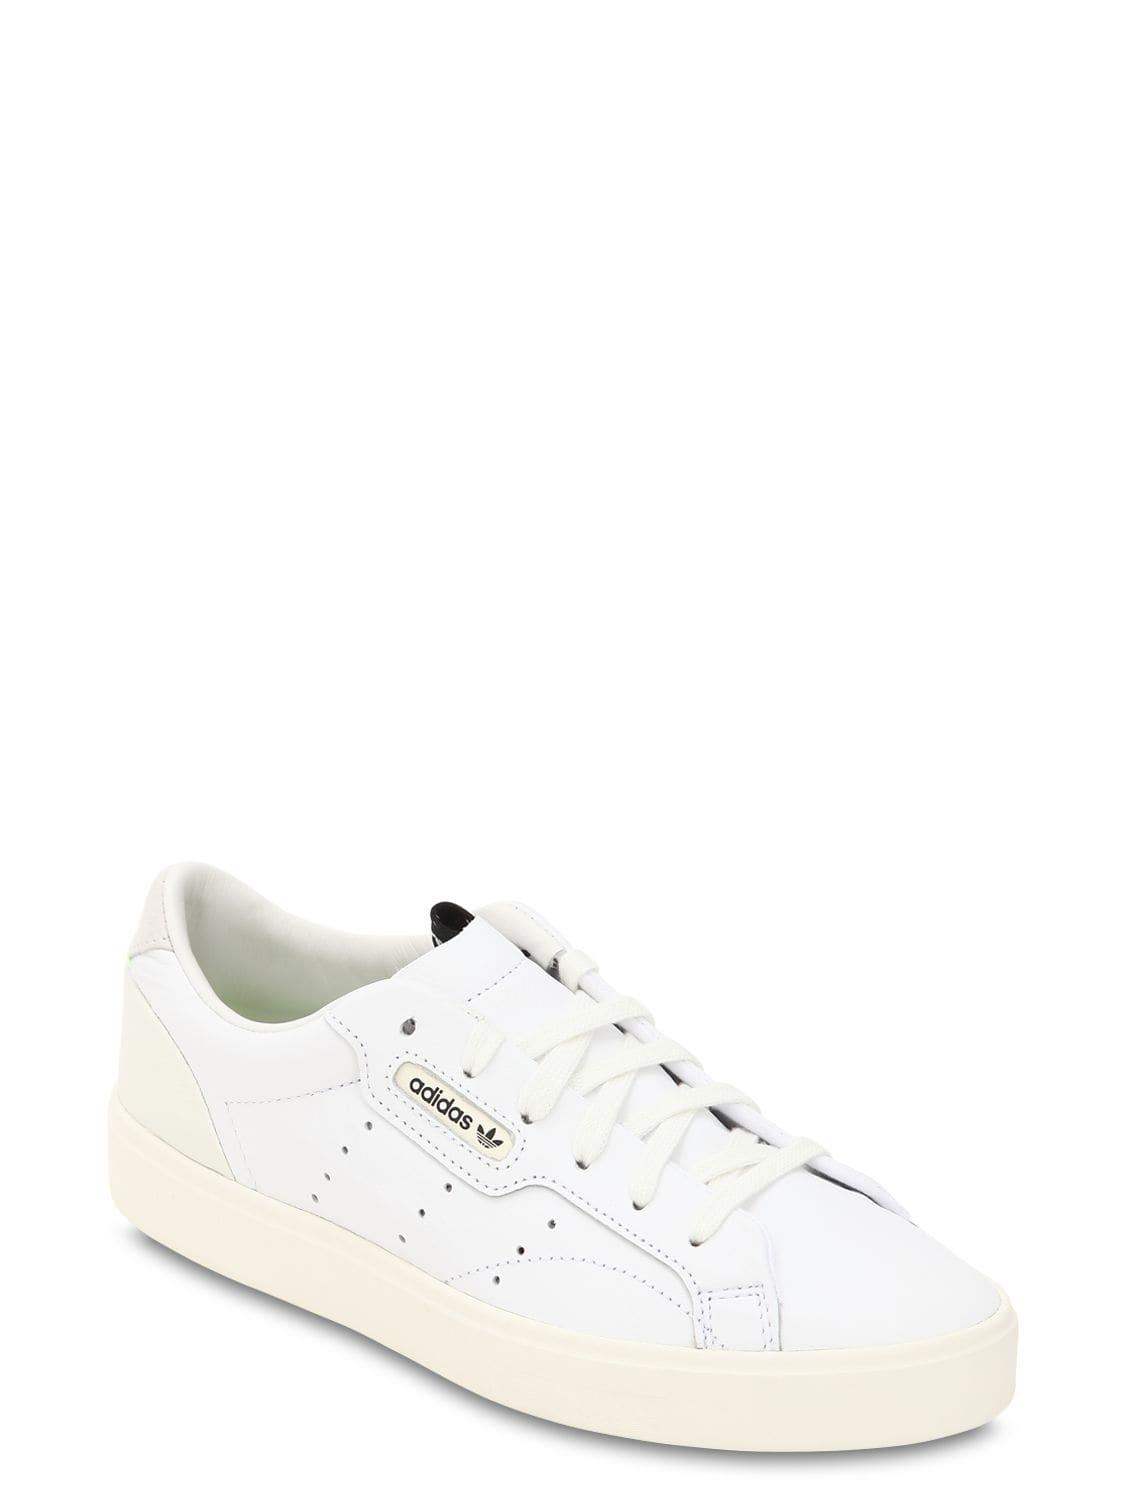 Lyst - adidas Originals Sleek Leather Sneakers in White